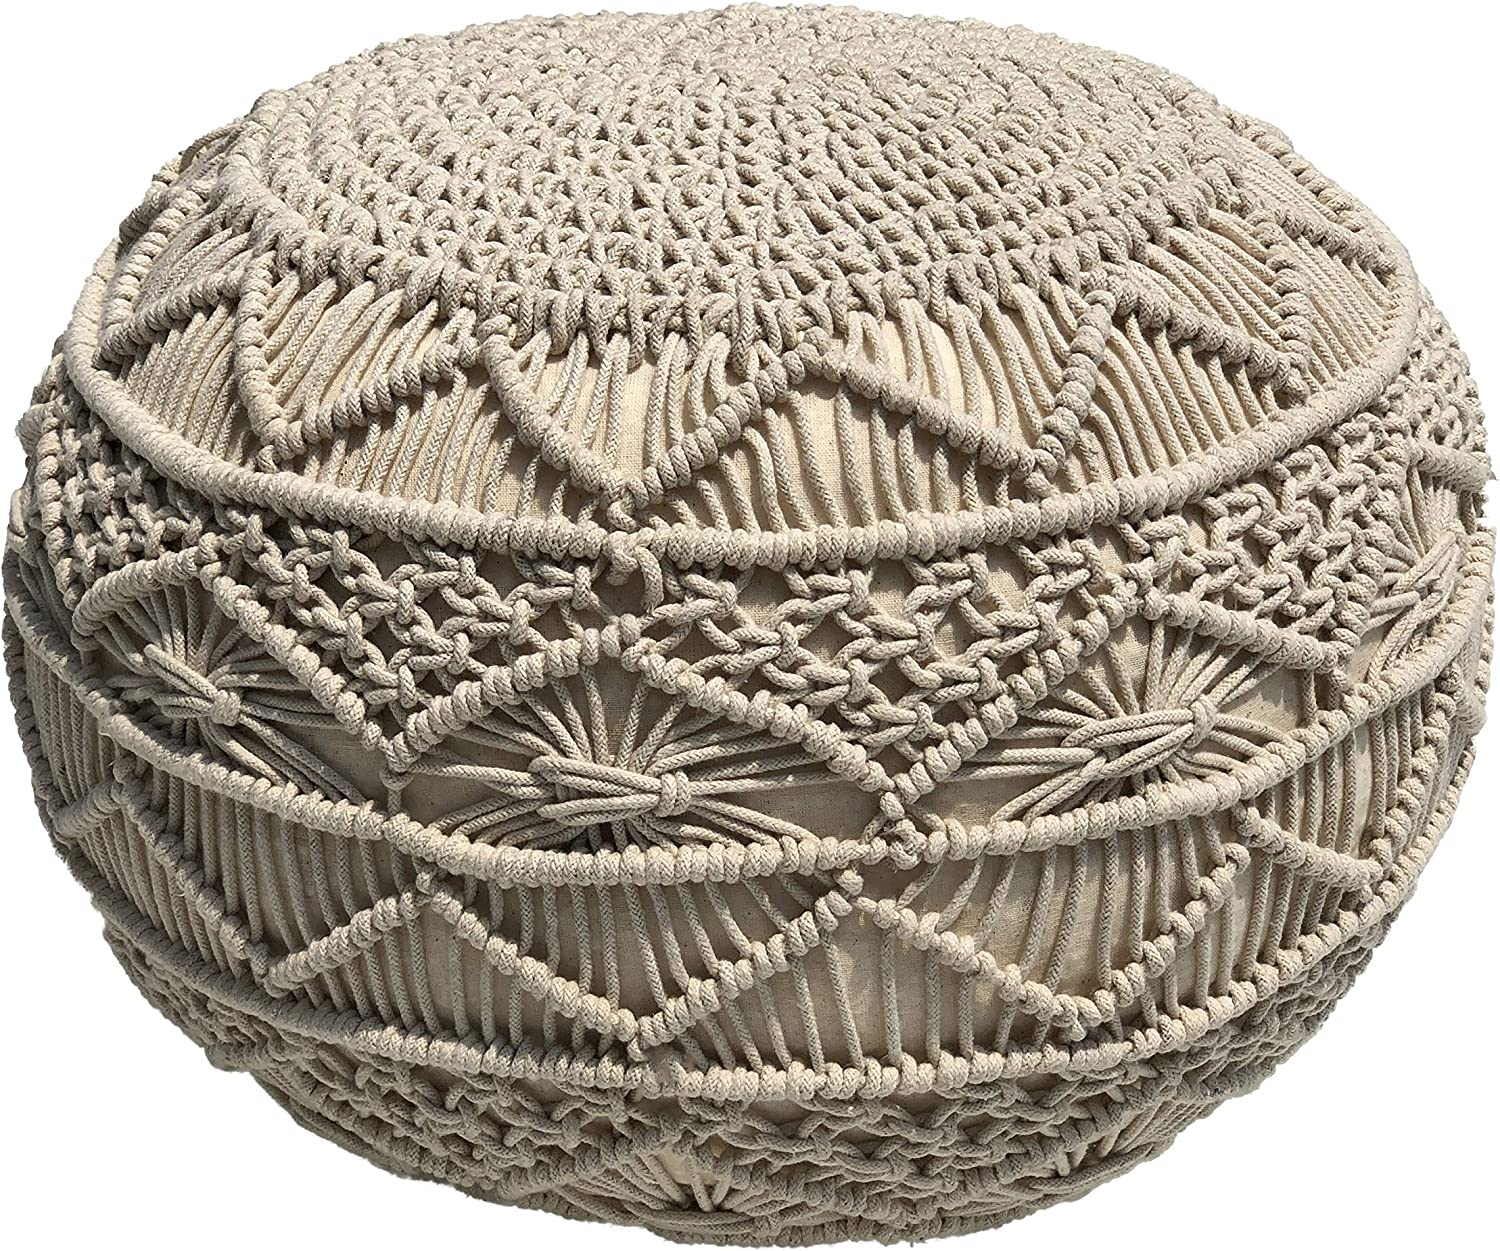 Pouf Ottoman Hand Knitted Cable Macramé Style - Inexpensive Dori Year-end gift